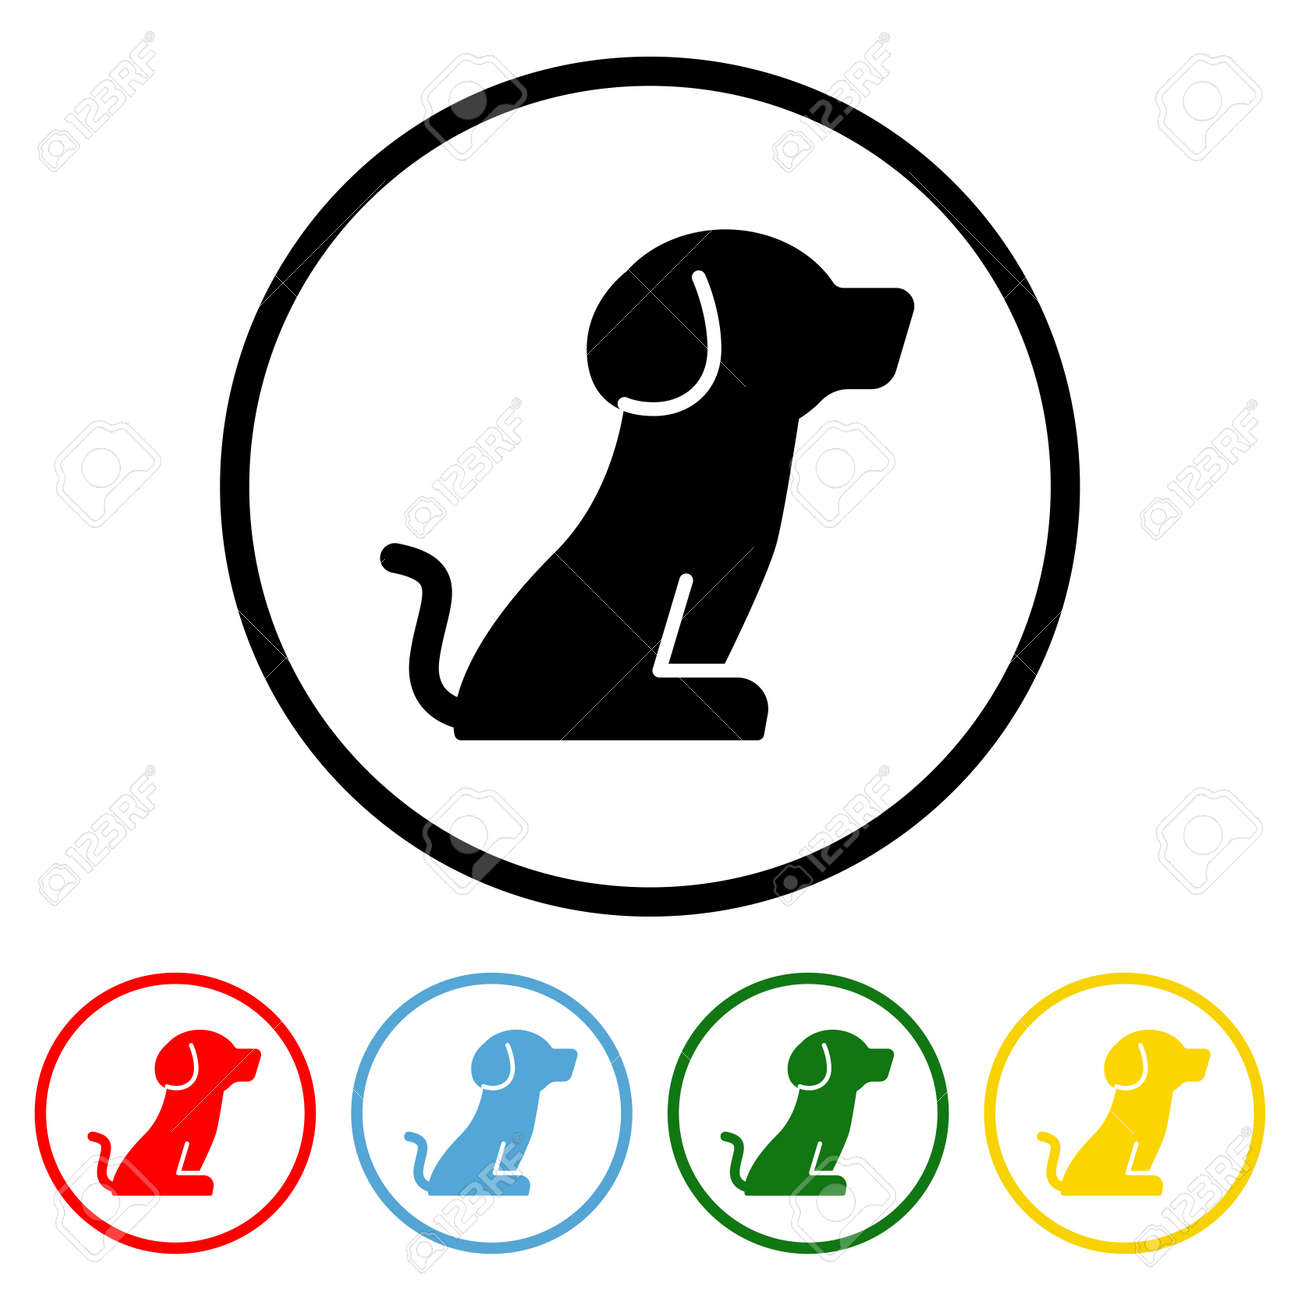 Dog icon vector illustration design element with four color variations. Vector illustration. All in a single layer. Elements for design. Dog Icon flat design. - 172254322